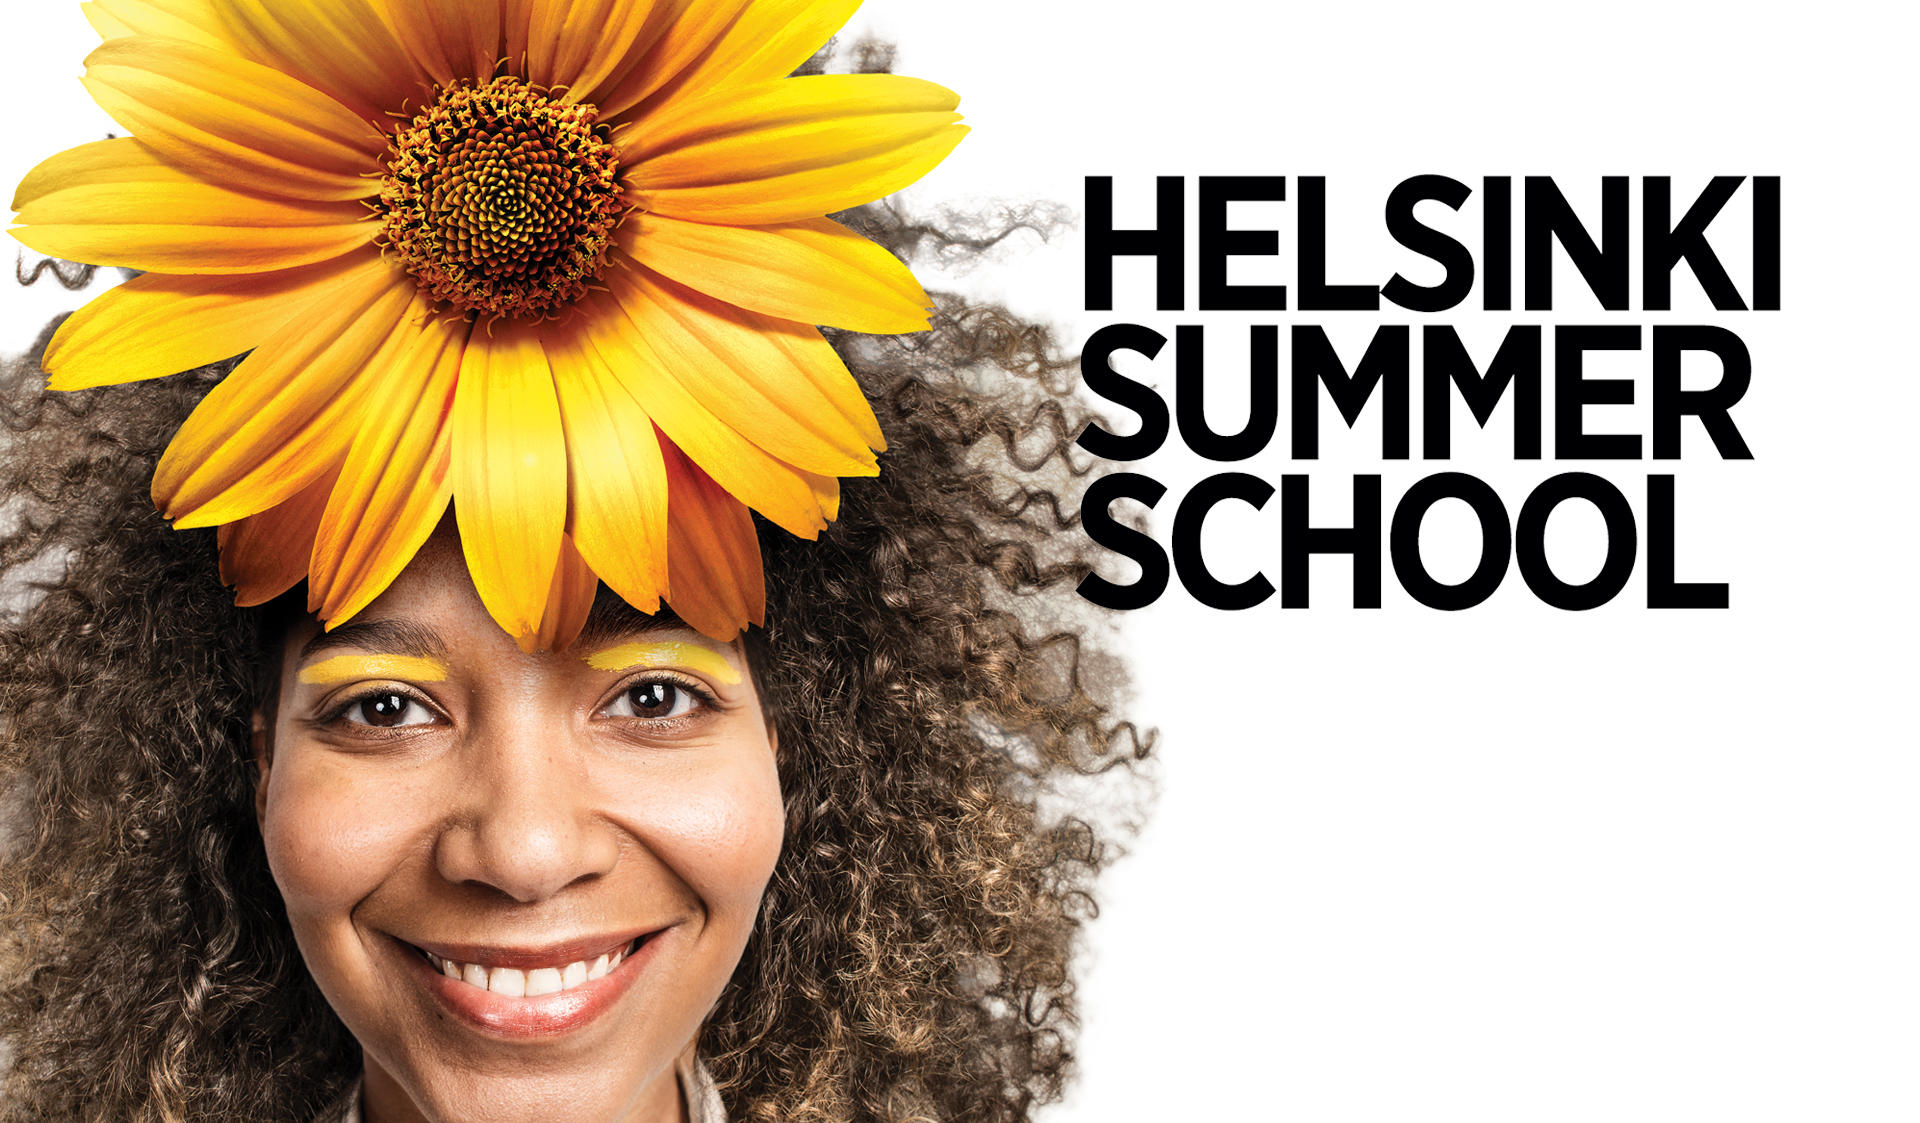 HSS name with a lady having a sun flower on her head